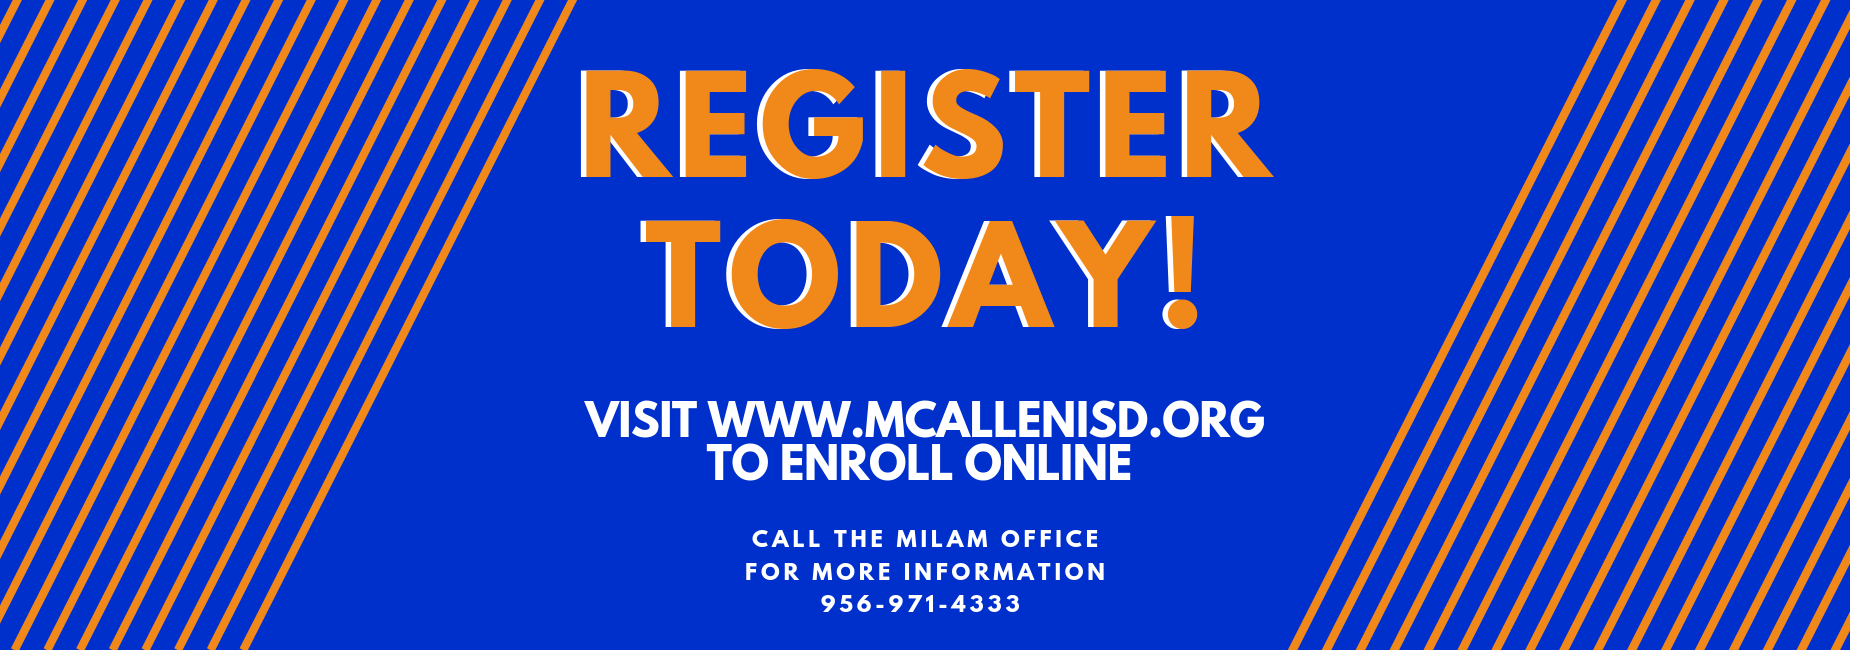 Register today! Visit www.mcallenisd.org to enroll online. Call the Milam Office for more info 956-971-4333